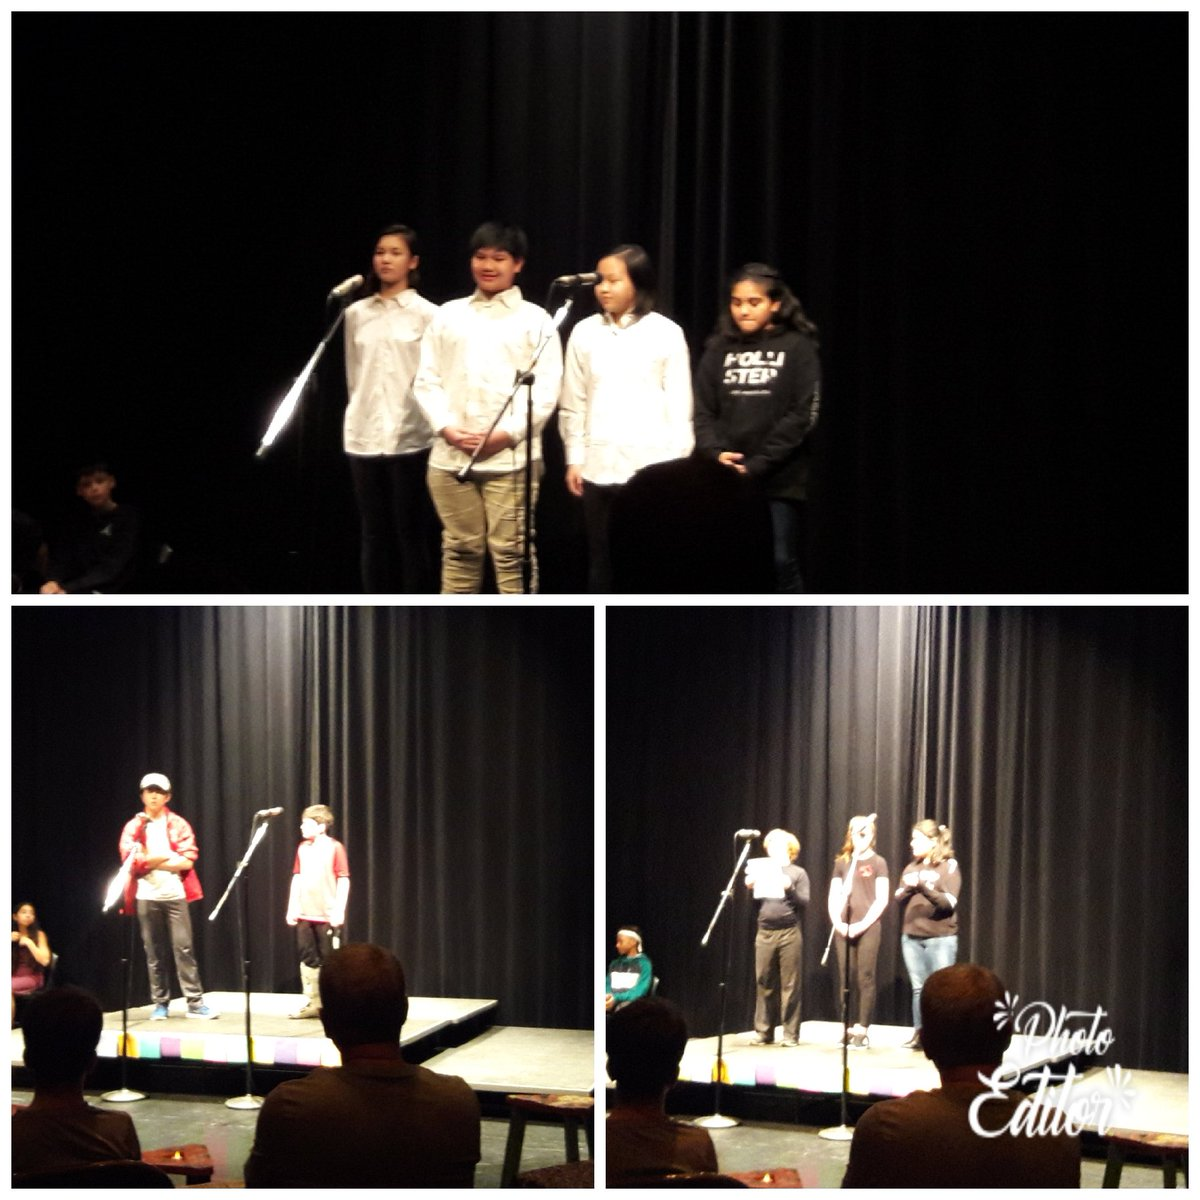 so-proud-of-former-campbellaps-students-sharing-poetry-at-kenmore-https-t-co-7caam5tmde